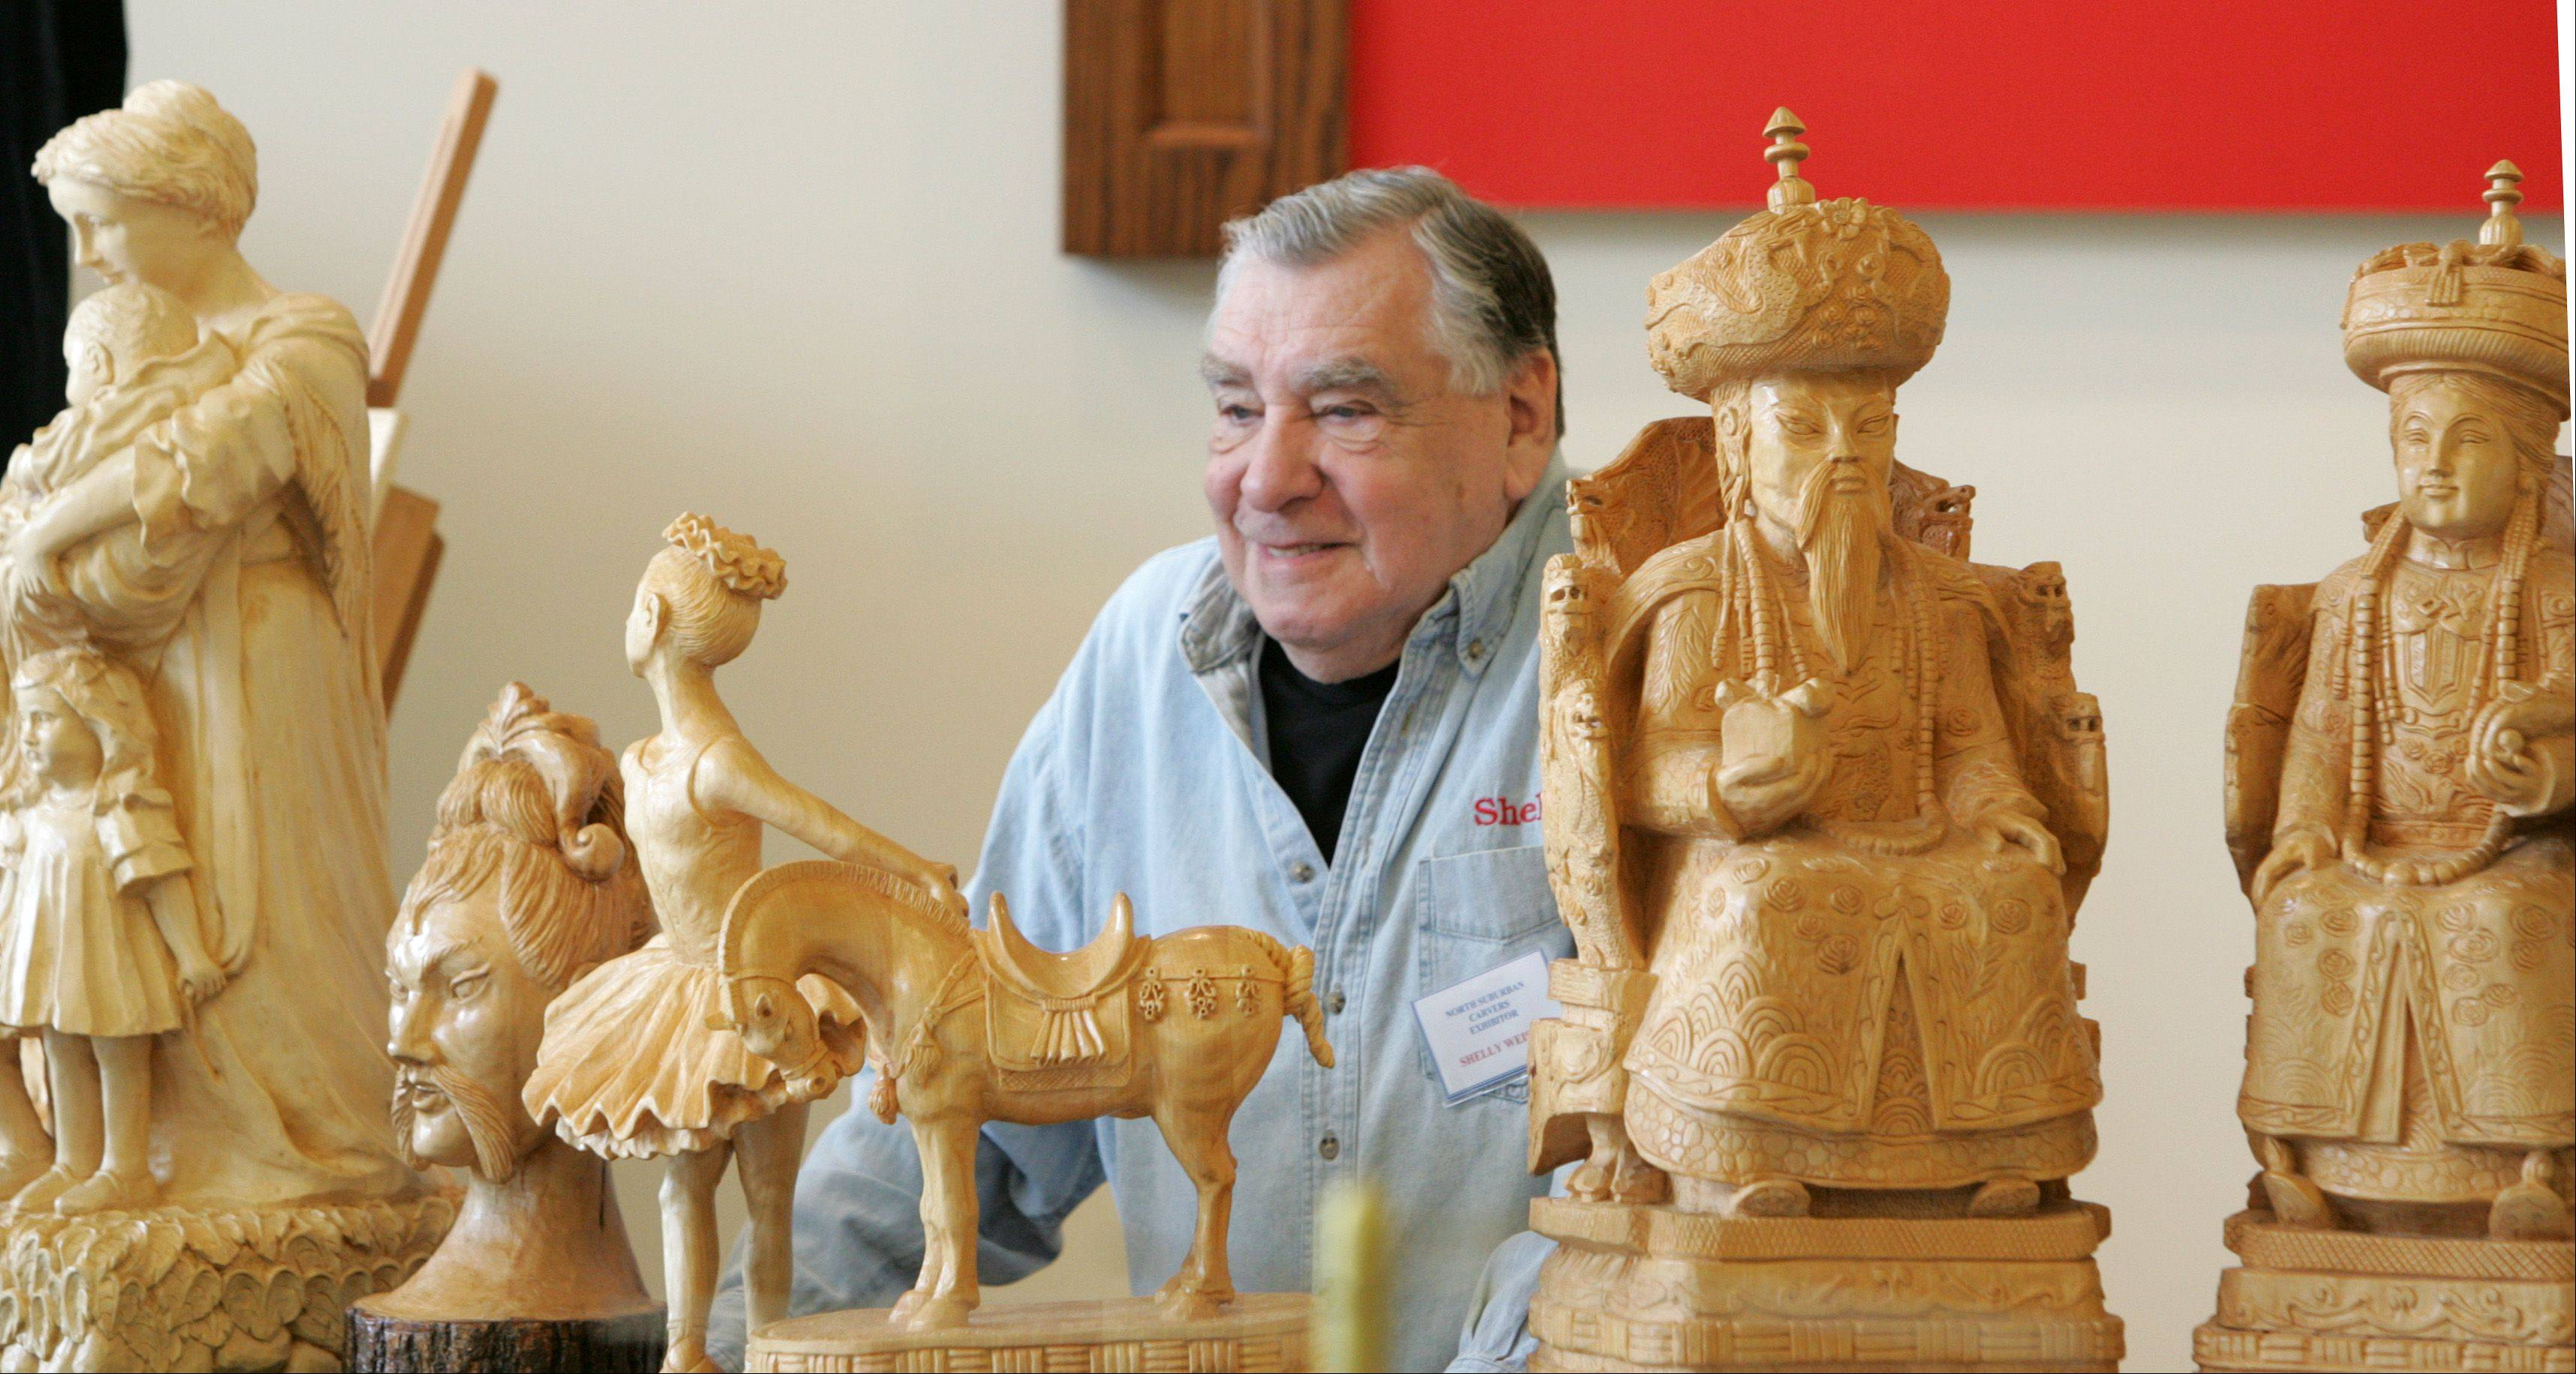 Shelly Weiser of Naperville shows his handcrafted artwork during a show at Cantigny Park. Weiser will show some of his work at the Winter Wood Wonders Show, set for Feb. 16-17 at the Kane County Fairgrounds, St. Charles.